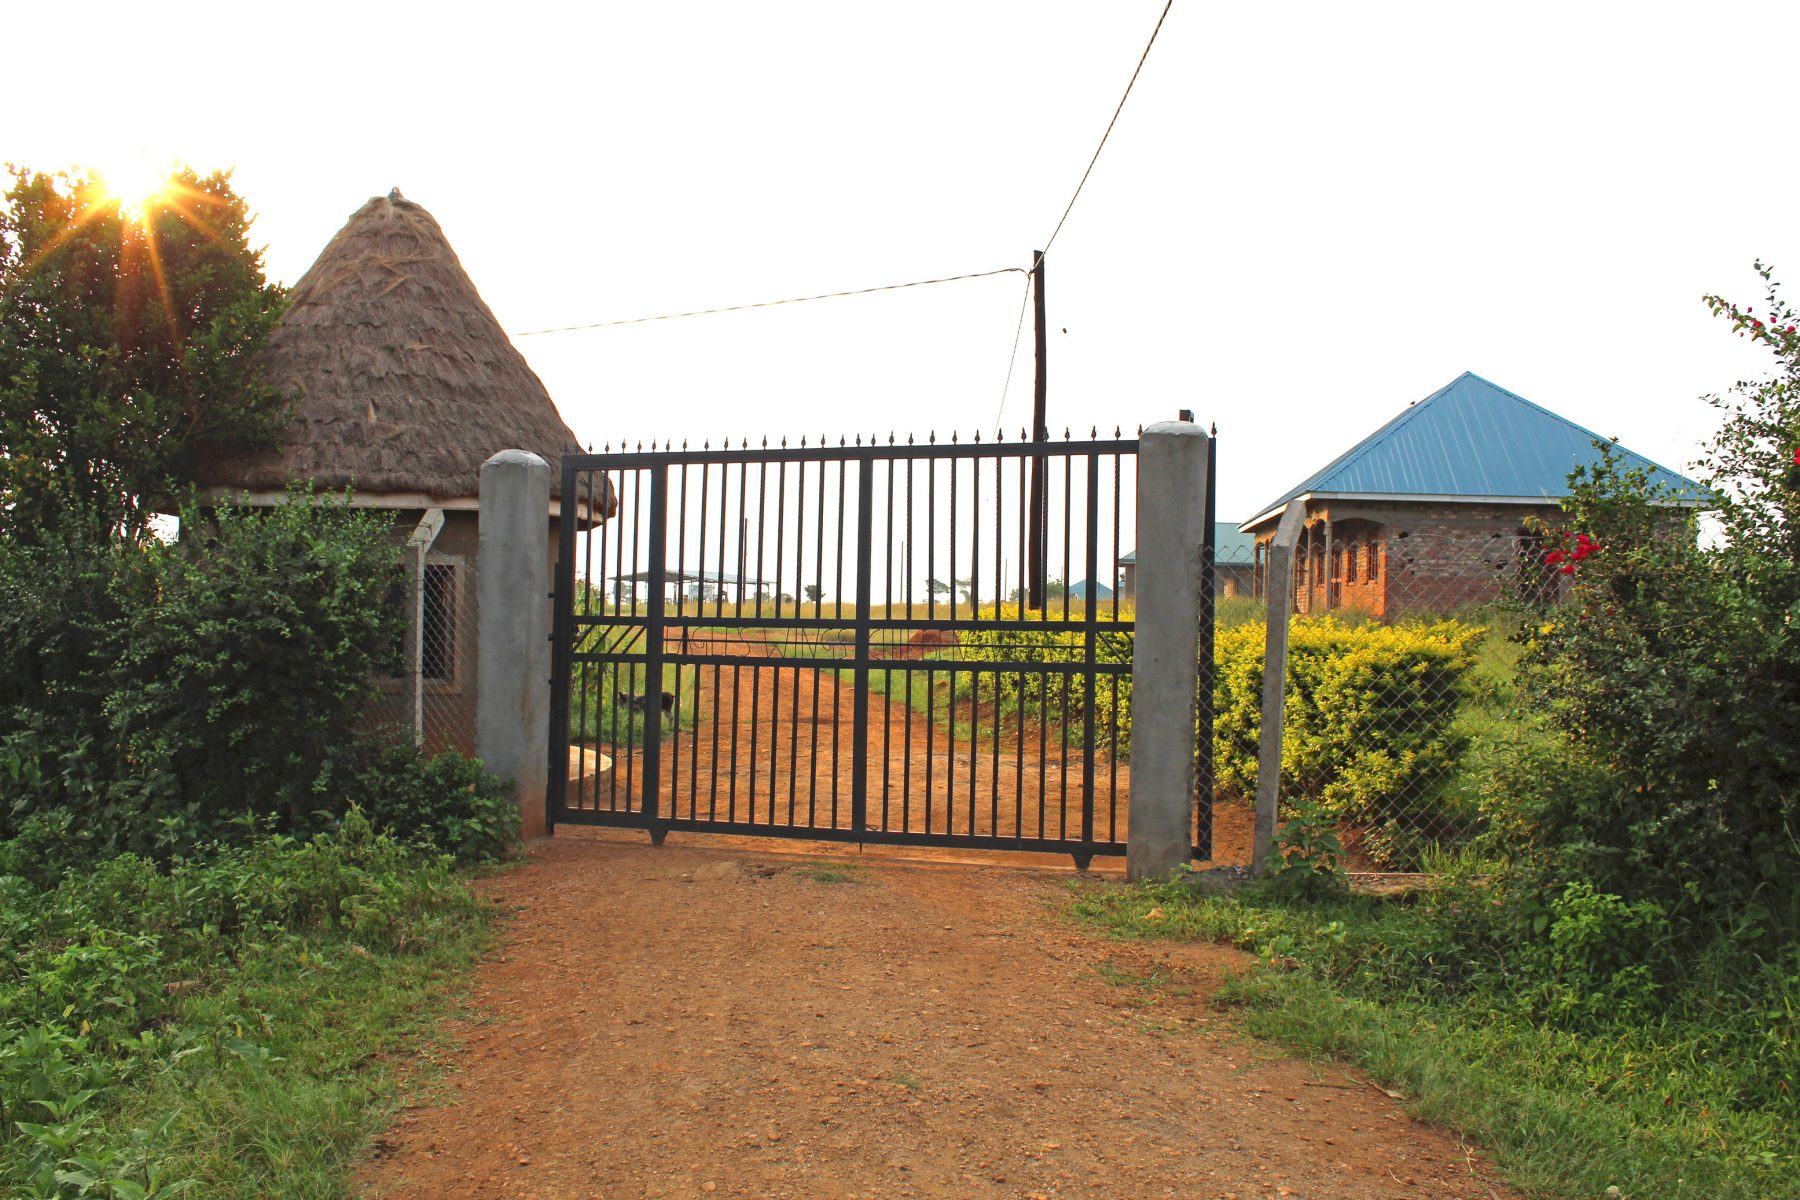 EWCV's New Metal Entry Gate with General Administration Building on the Right